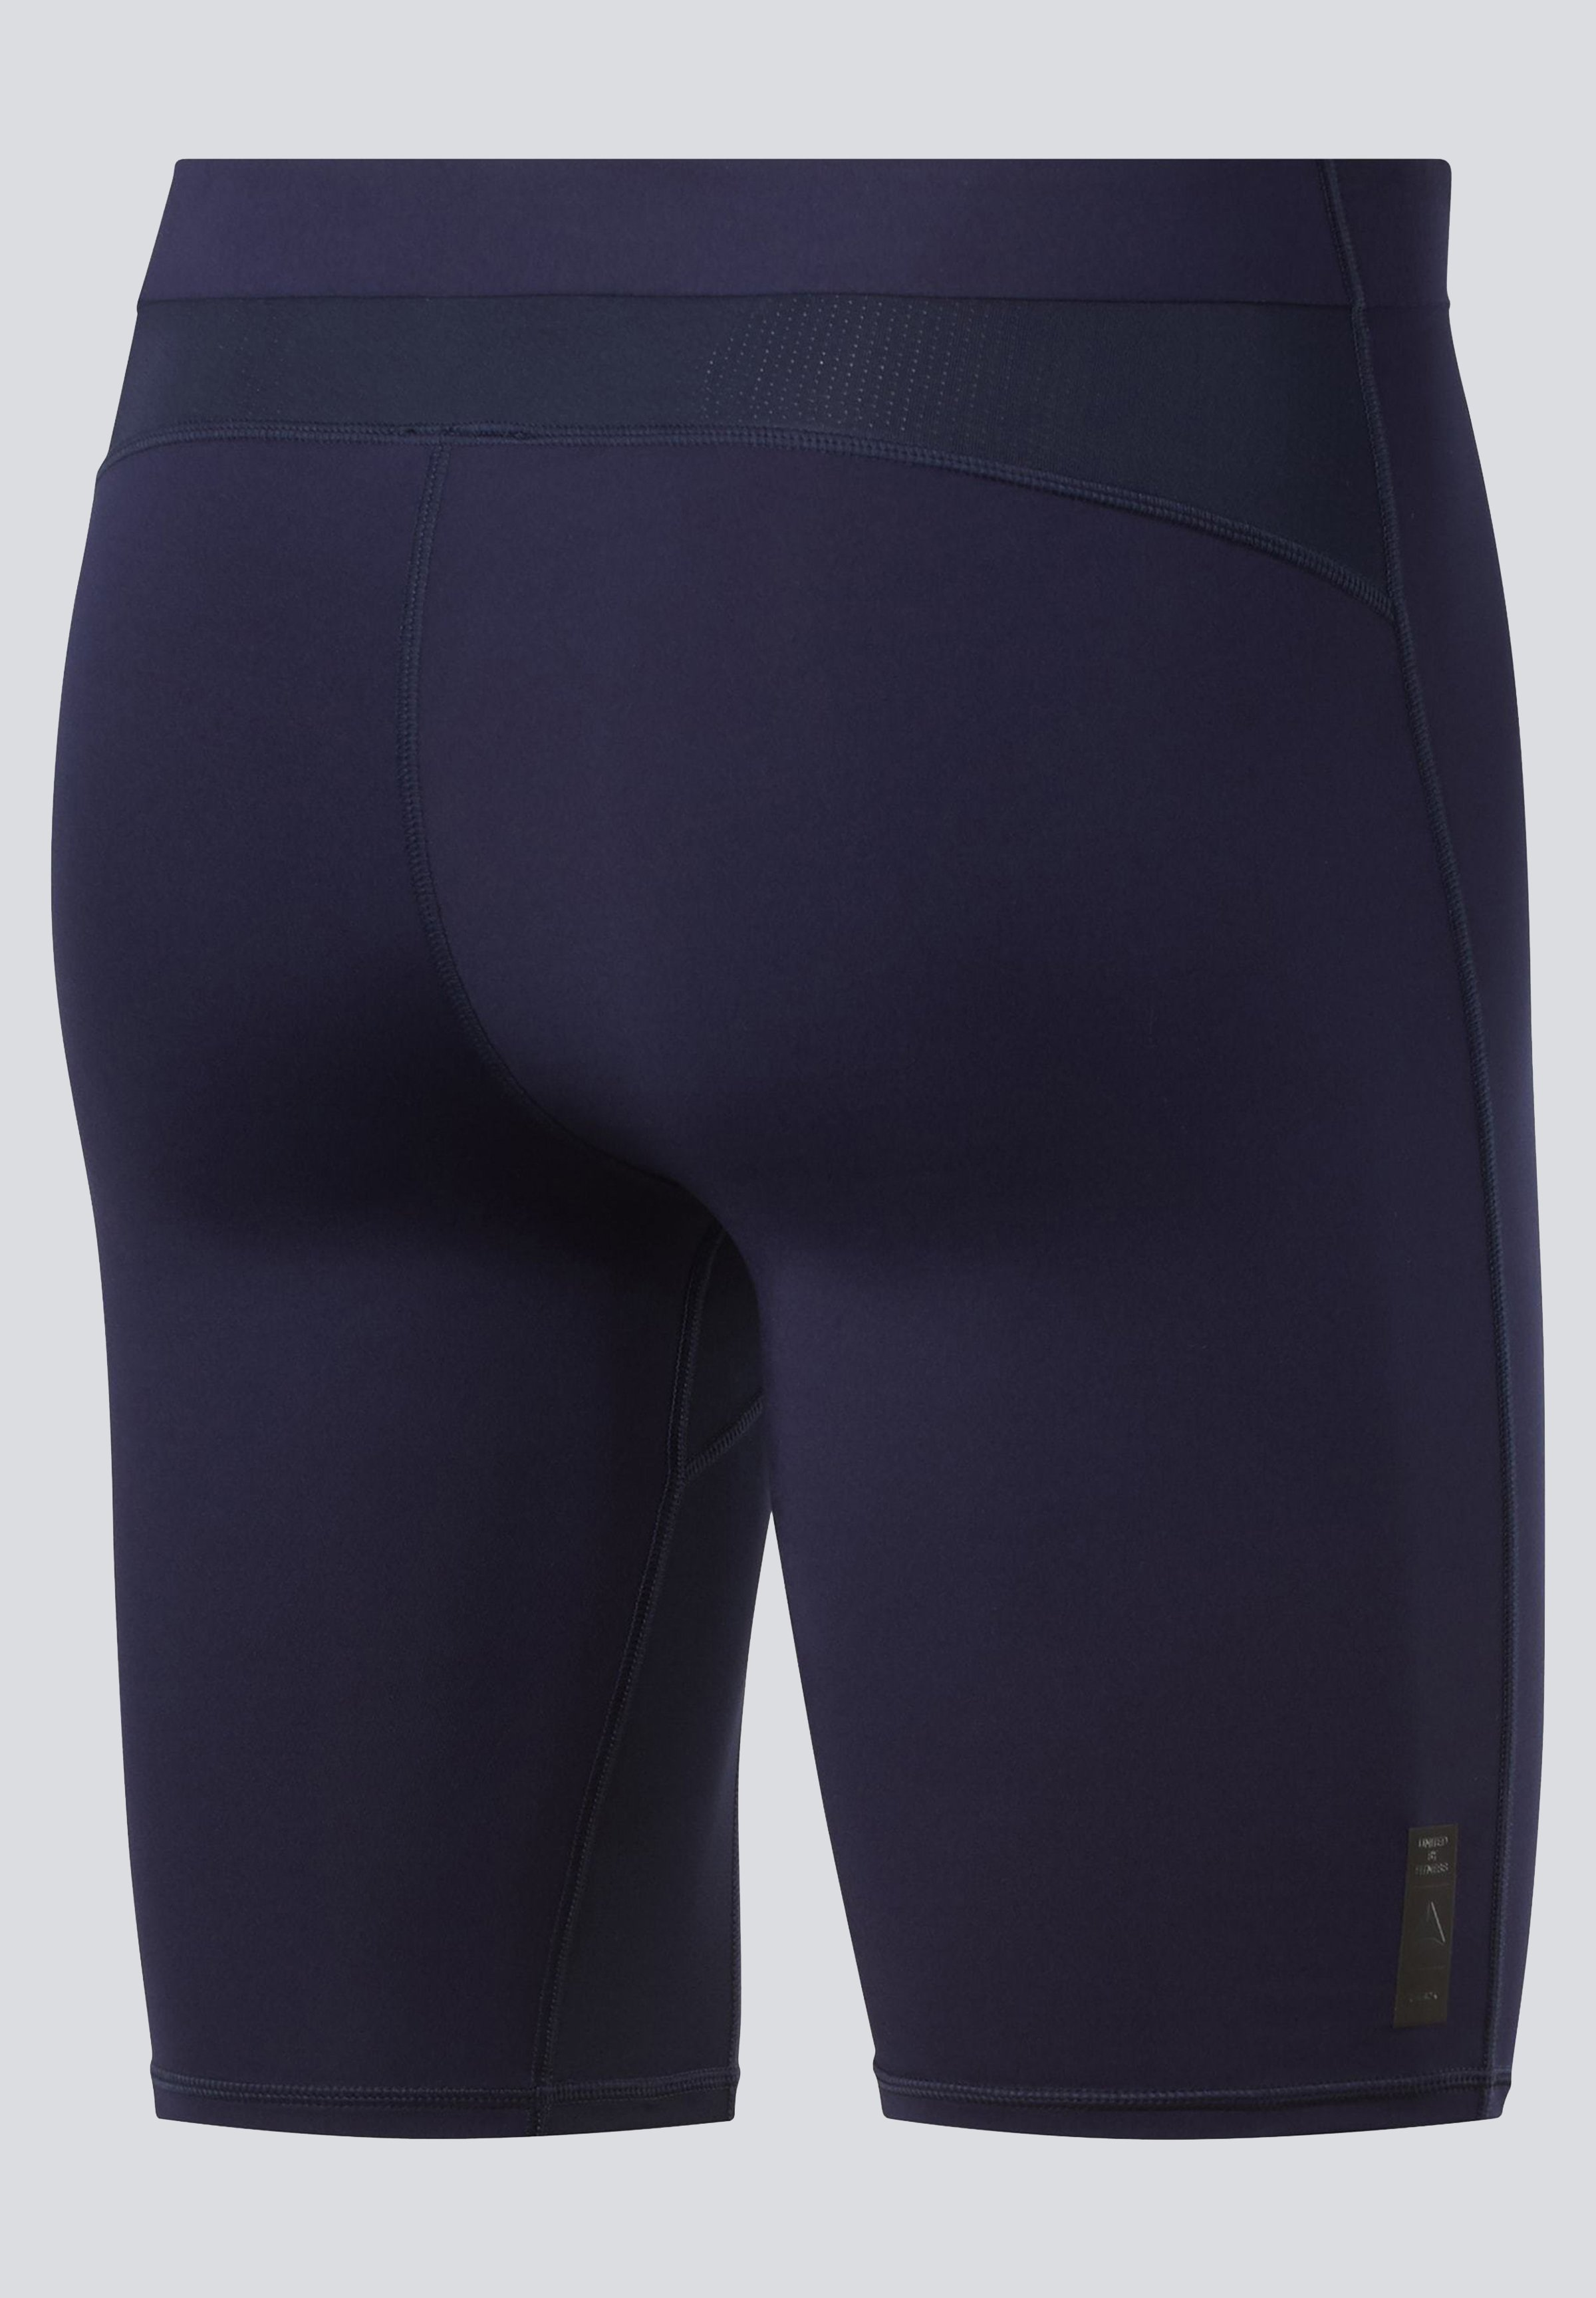 Reebok United By Fitness Compression Shorts - Sports Blue